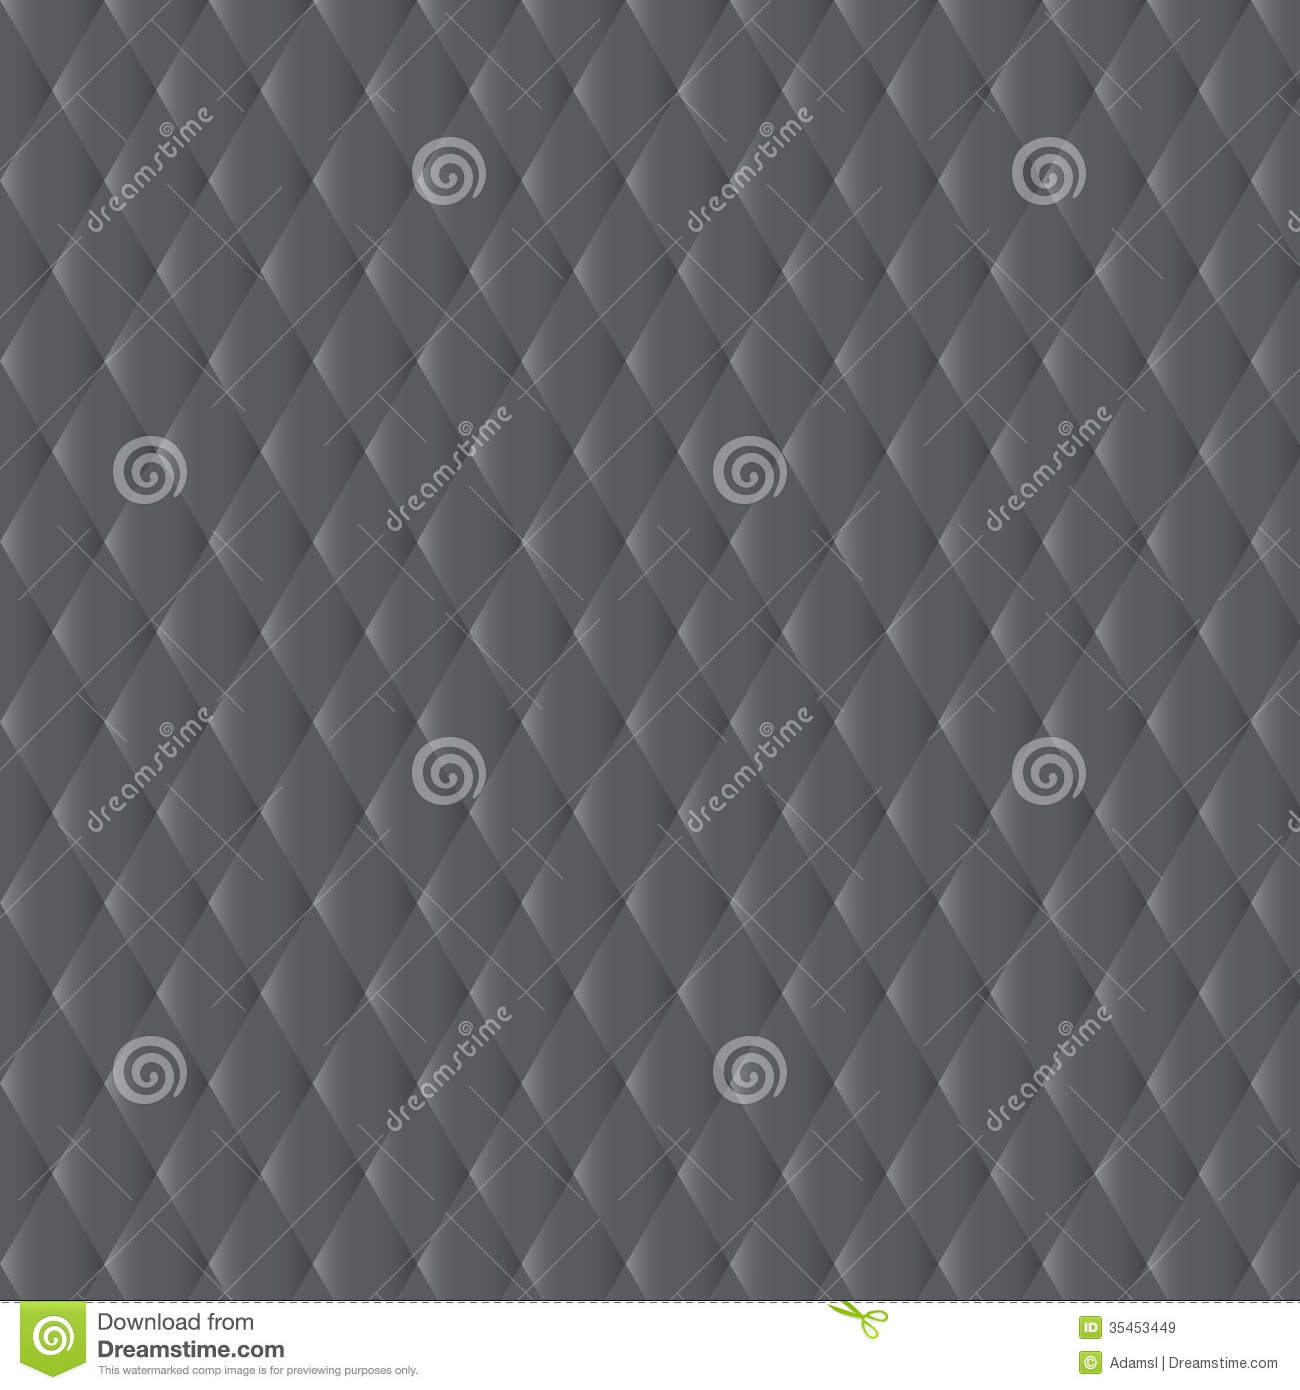 Quilted Fabric Quilted Fabric Background Illustration 35453449 Megapixl